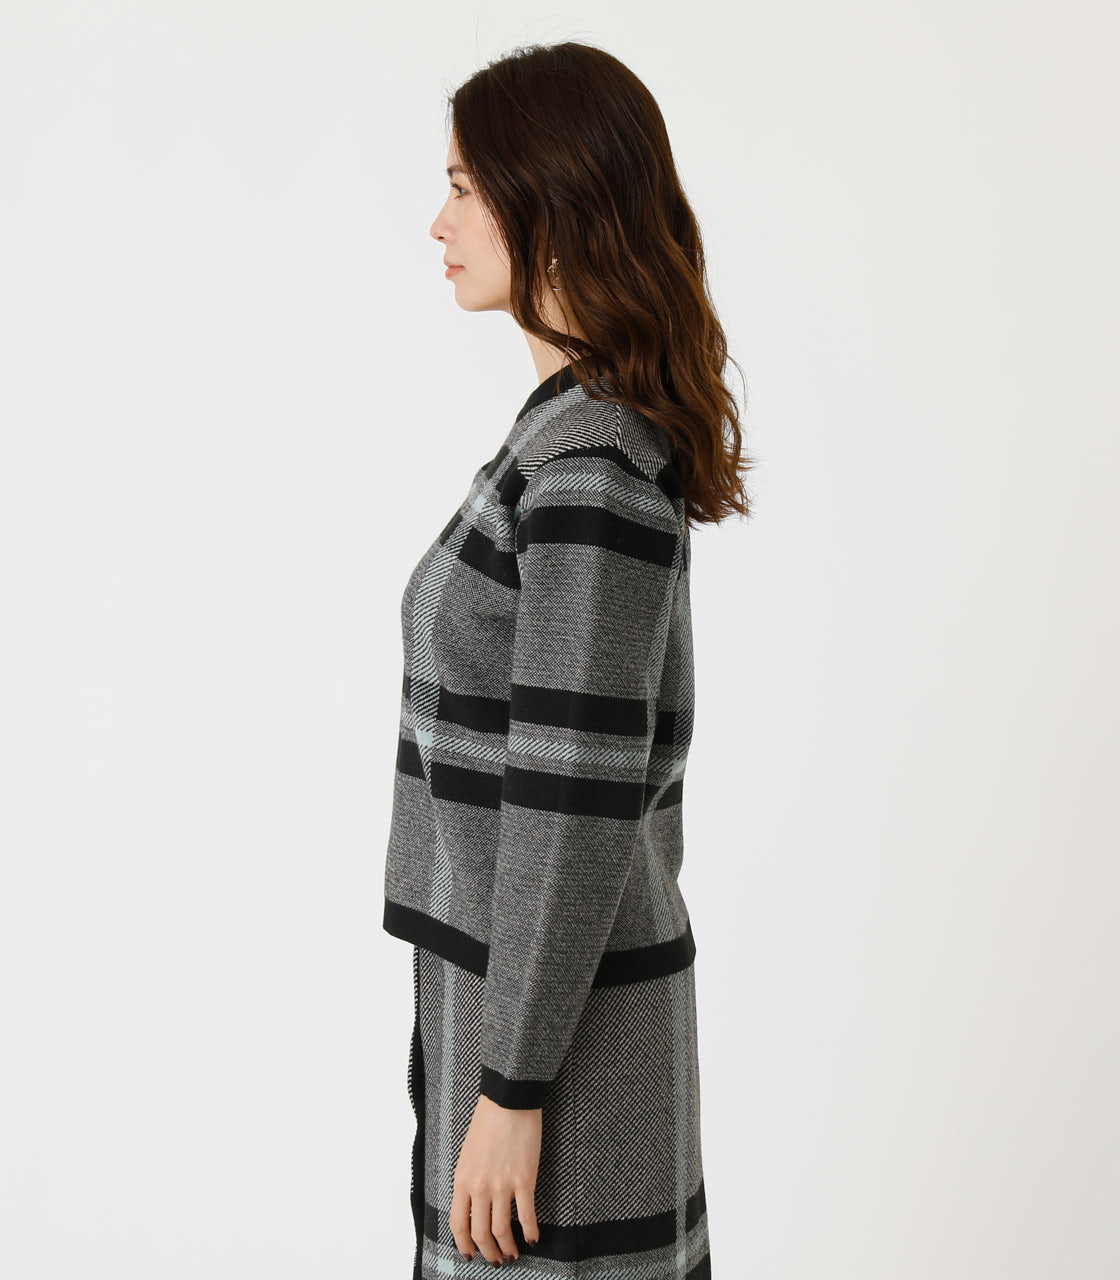 BIG CHECK KNIT TOPS/ビッグチェックニットトップス 詳細画像 柄BLK 6